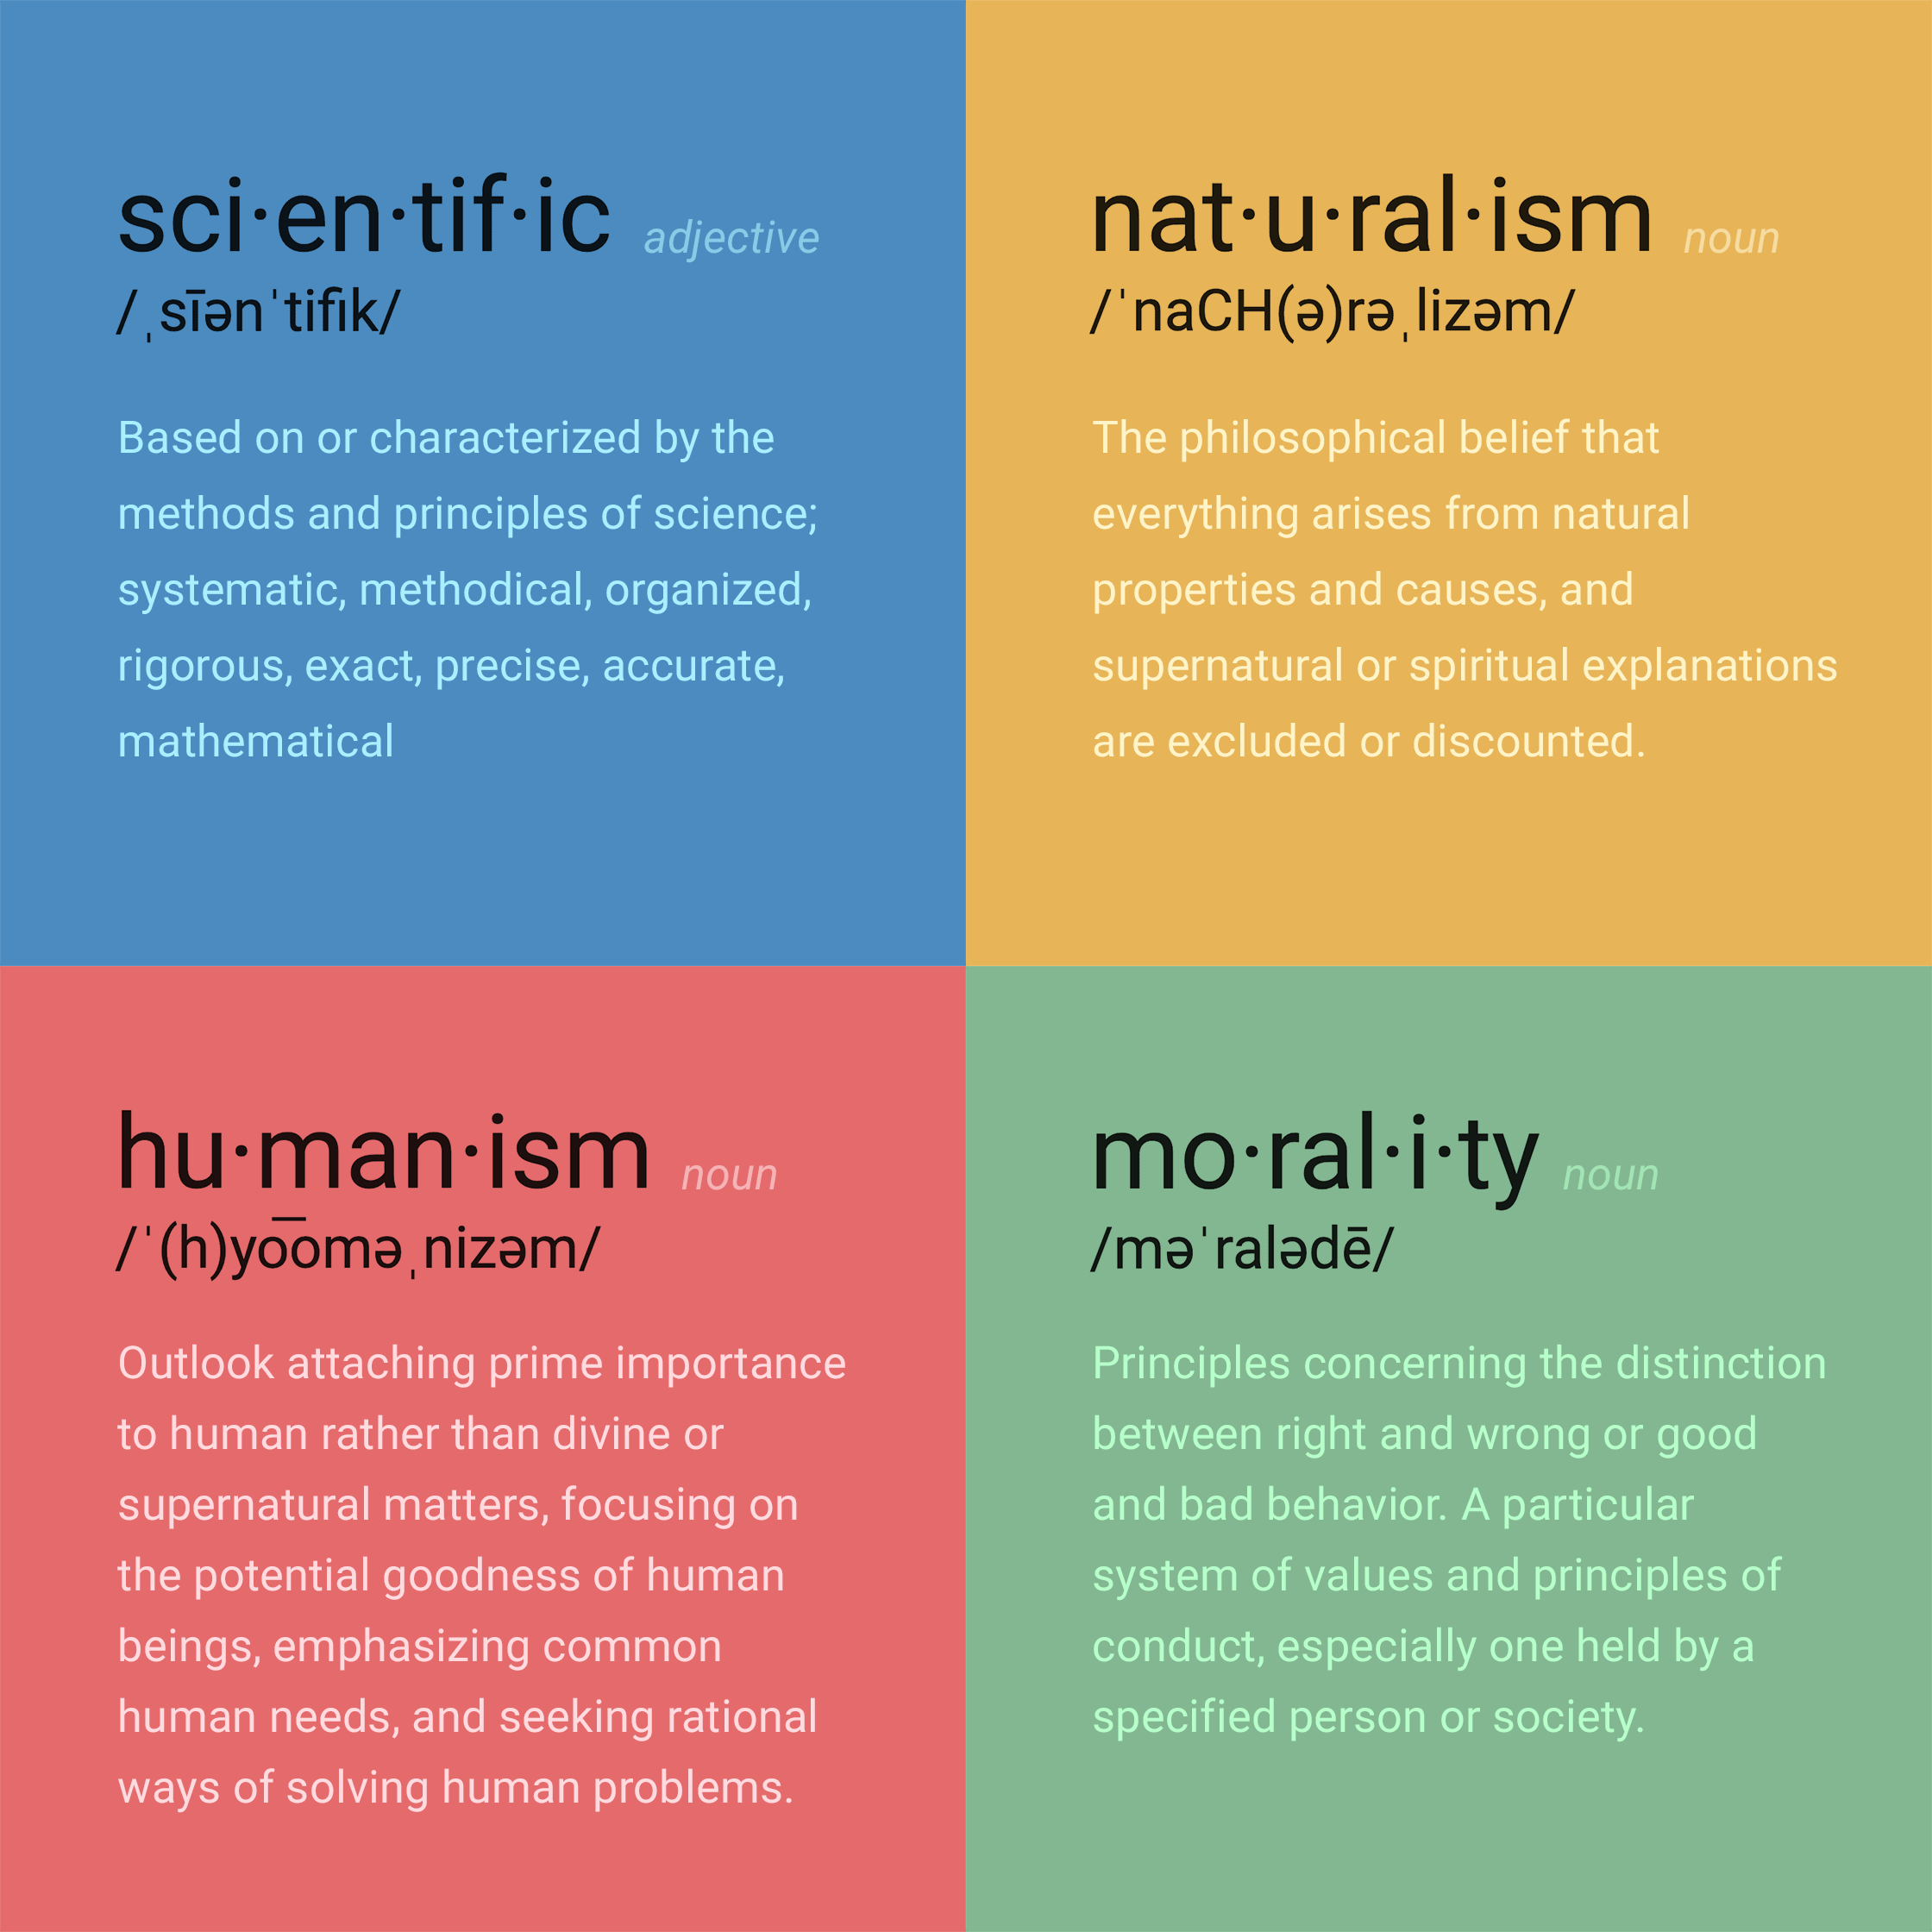 scientific, naturalism, humanism, morality (definitions)